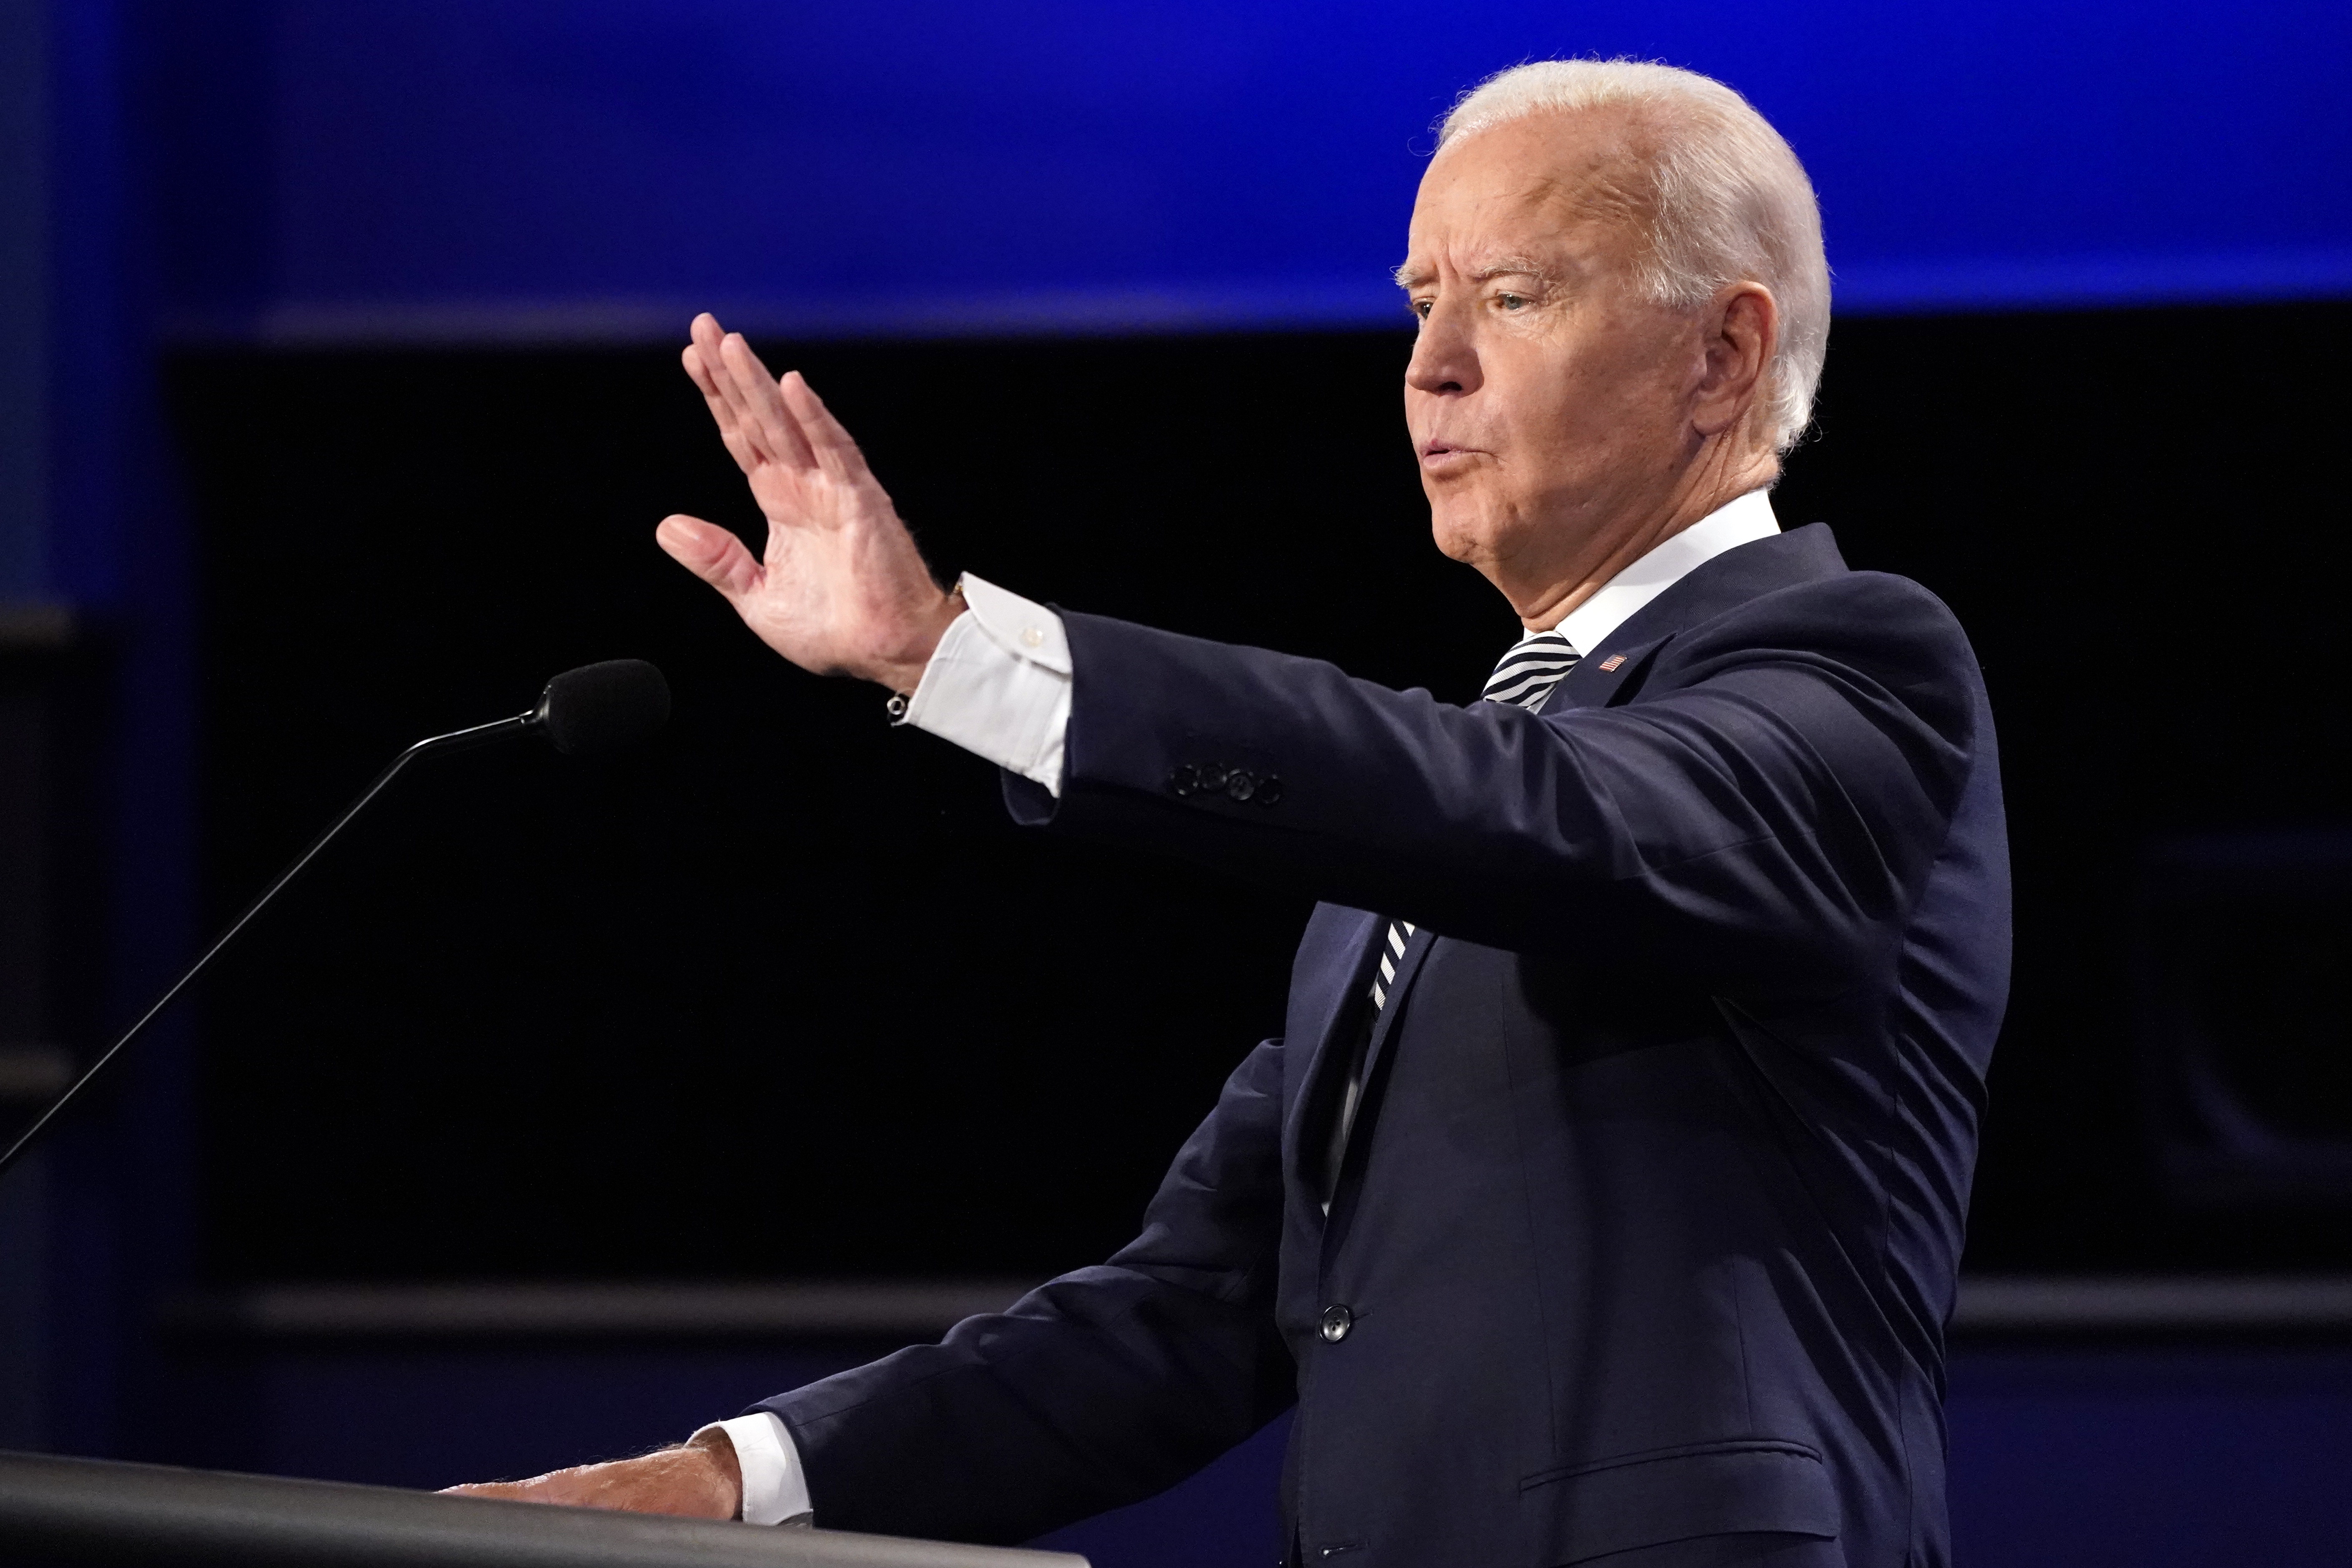 Democratic presidential candidate former Vice President Joe Biden gestures during the first presidential debate Tuesday, Sept. 29, 2020, at Case Western University and Cleveland Clinic, in Cleveland, Ohio. (AP Photo/Julio Cortez)